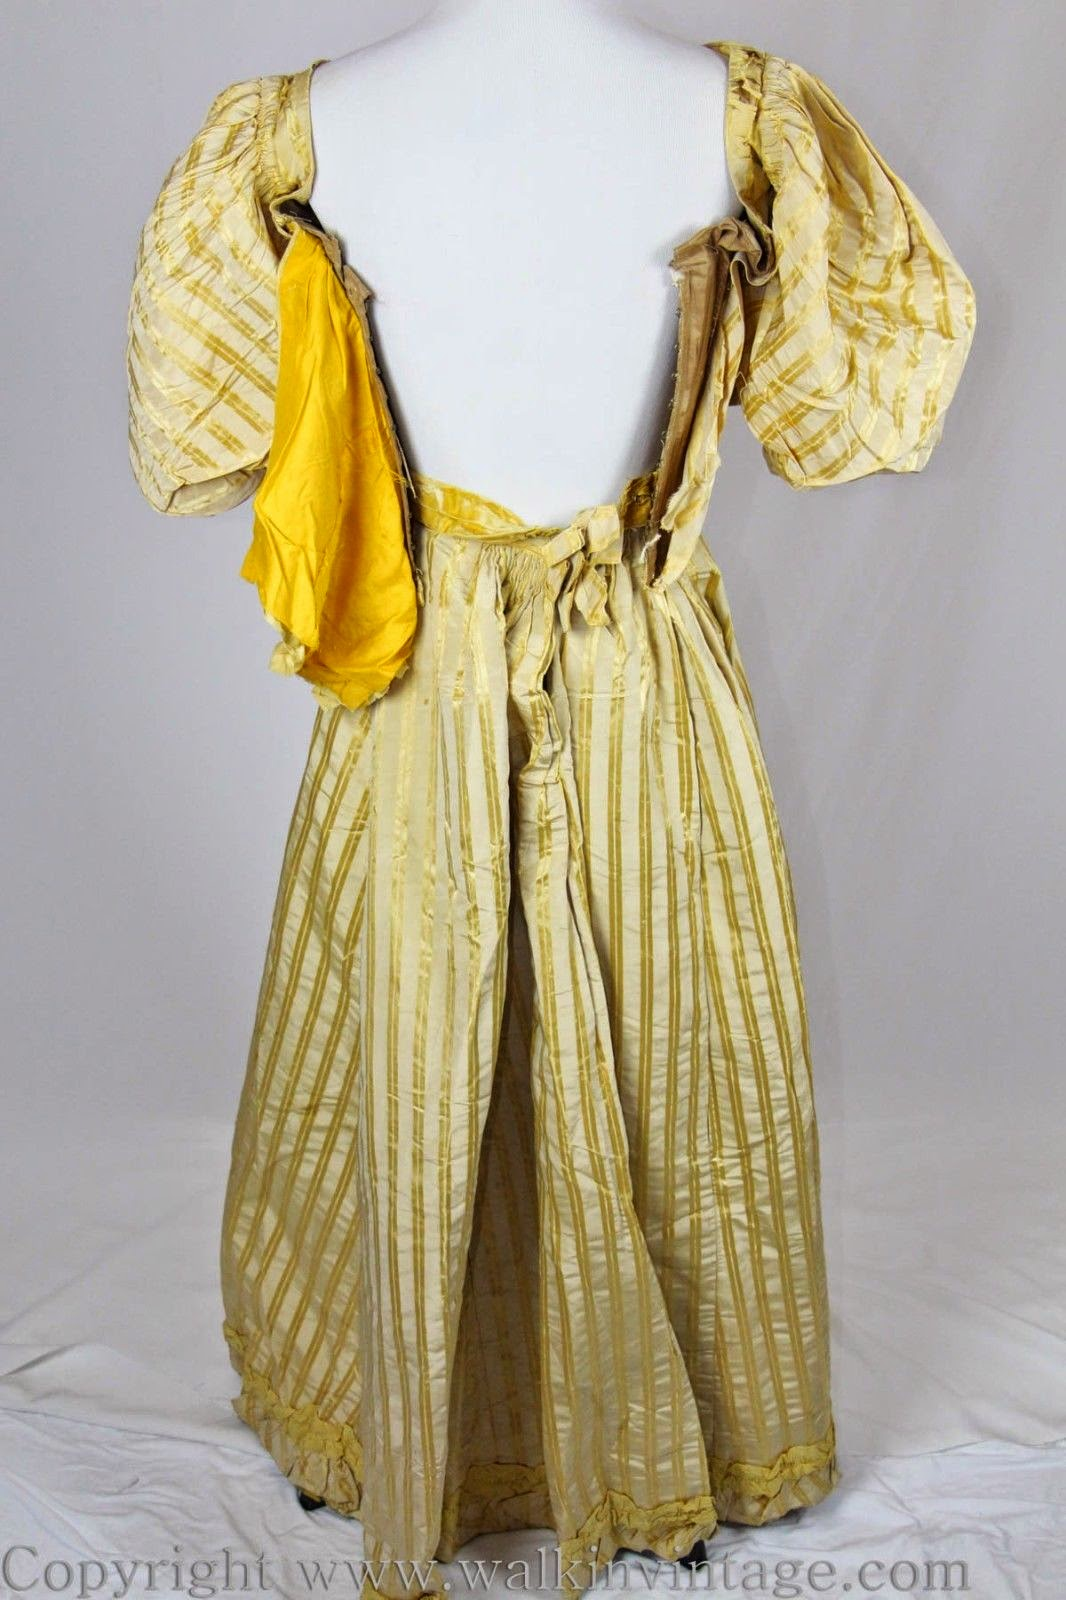 All The Pretty Dresses: 1890's Ball Gown in Yellow